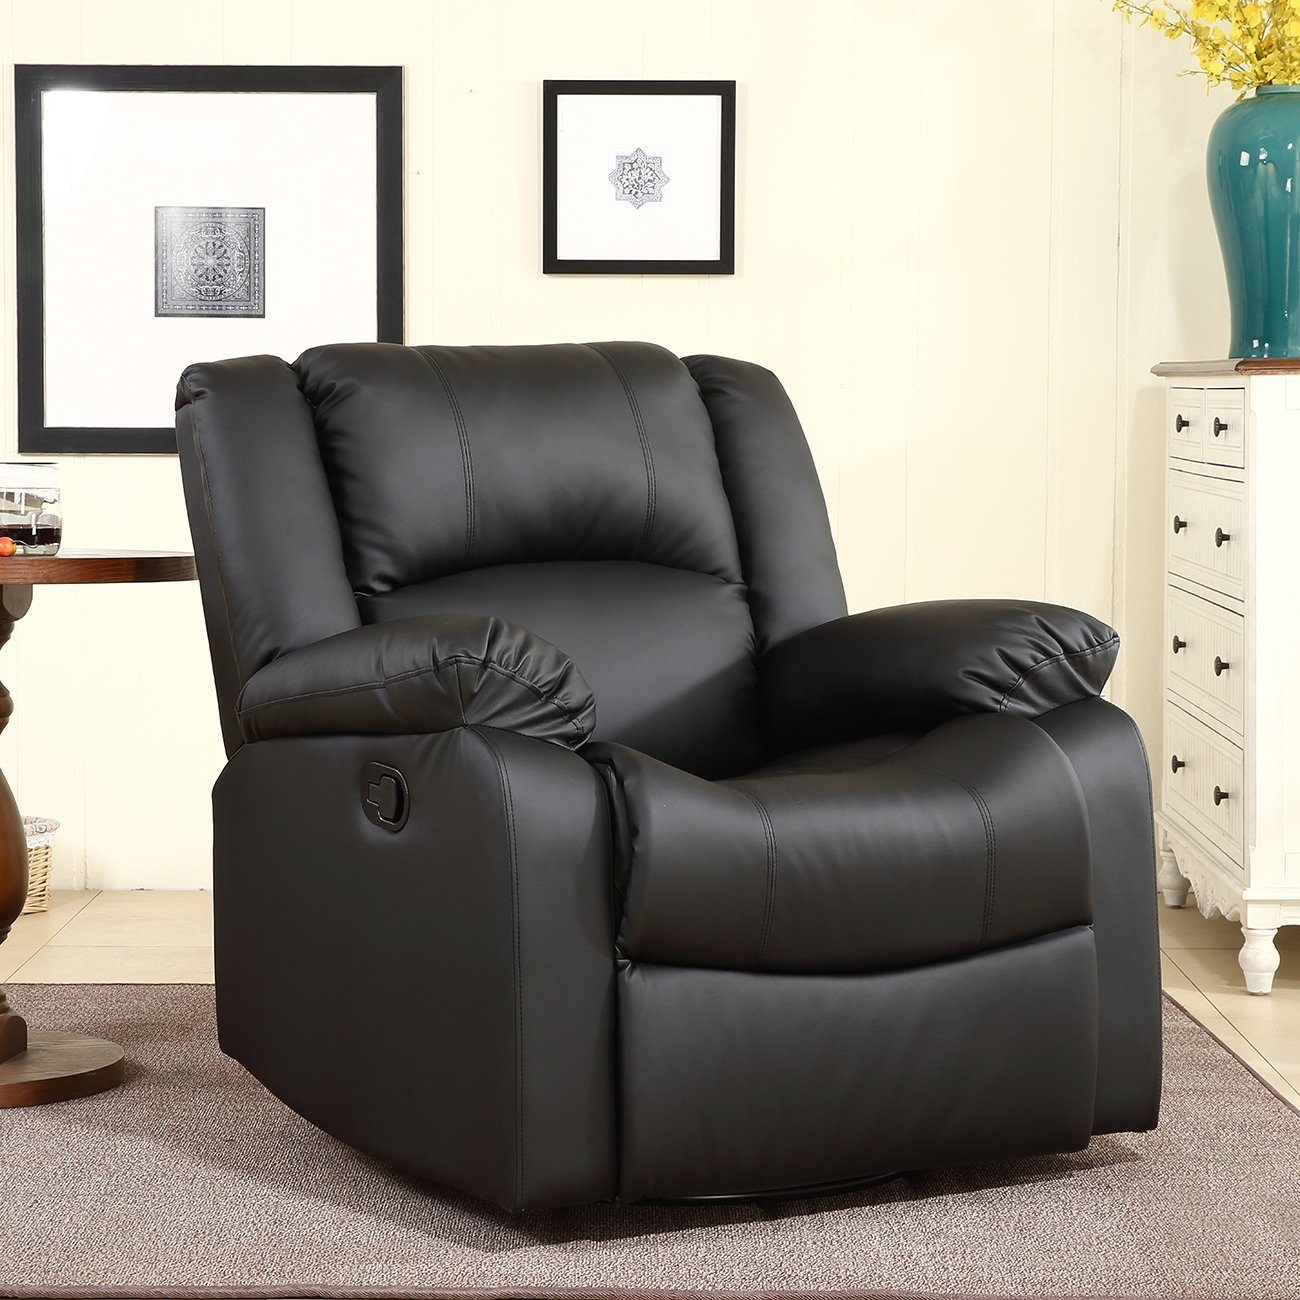 Shop Belleze Rocker And Swivel Glider Recliner Chair Faux Leather Regarding Chocolate Brown Leather Tufted Swivel Chairs (View 25 of 25)